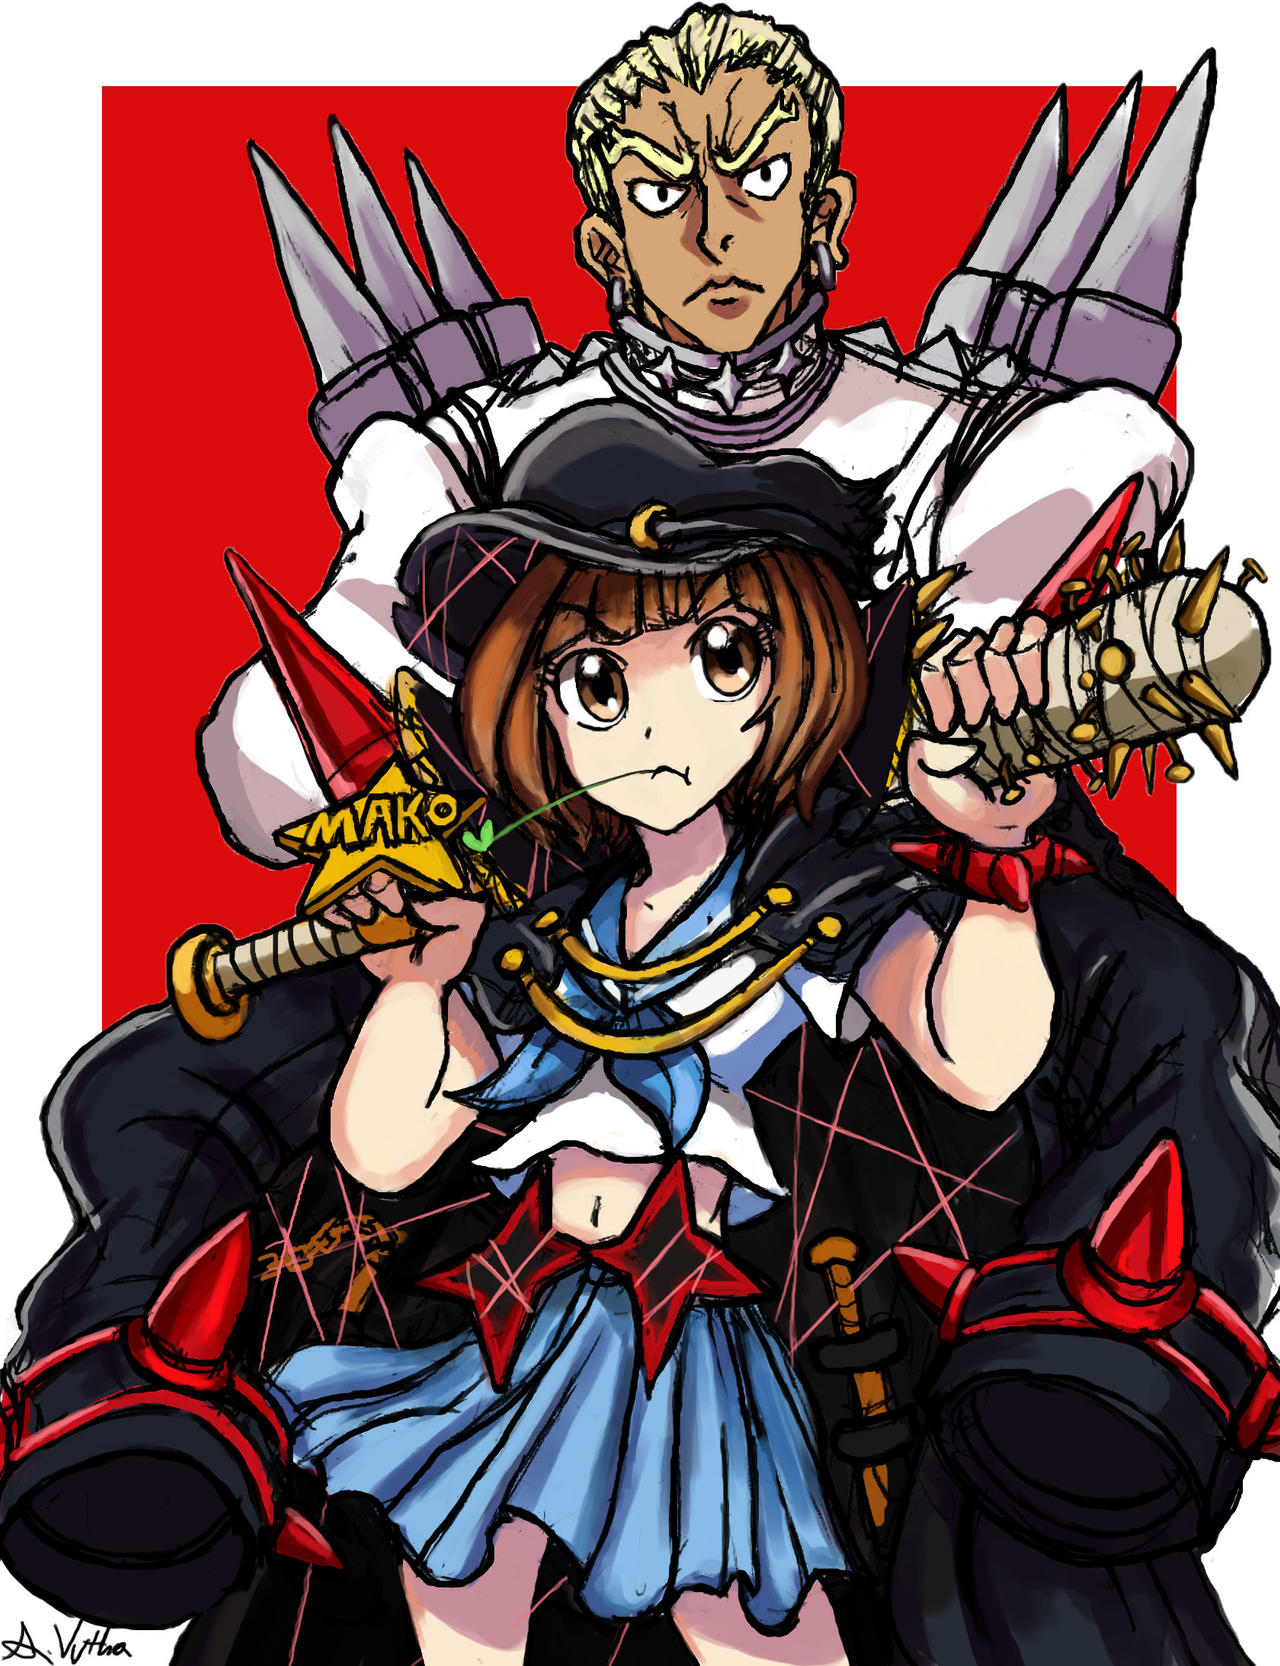 Mako and Gamagori by TheLivingShadow - 522.4KB